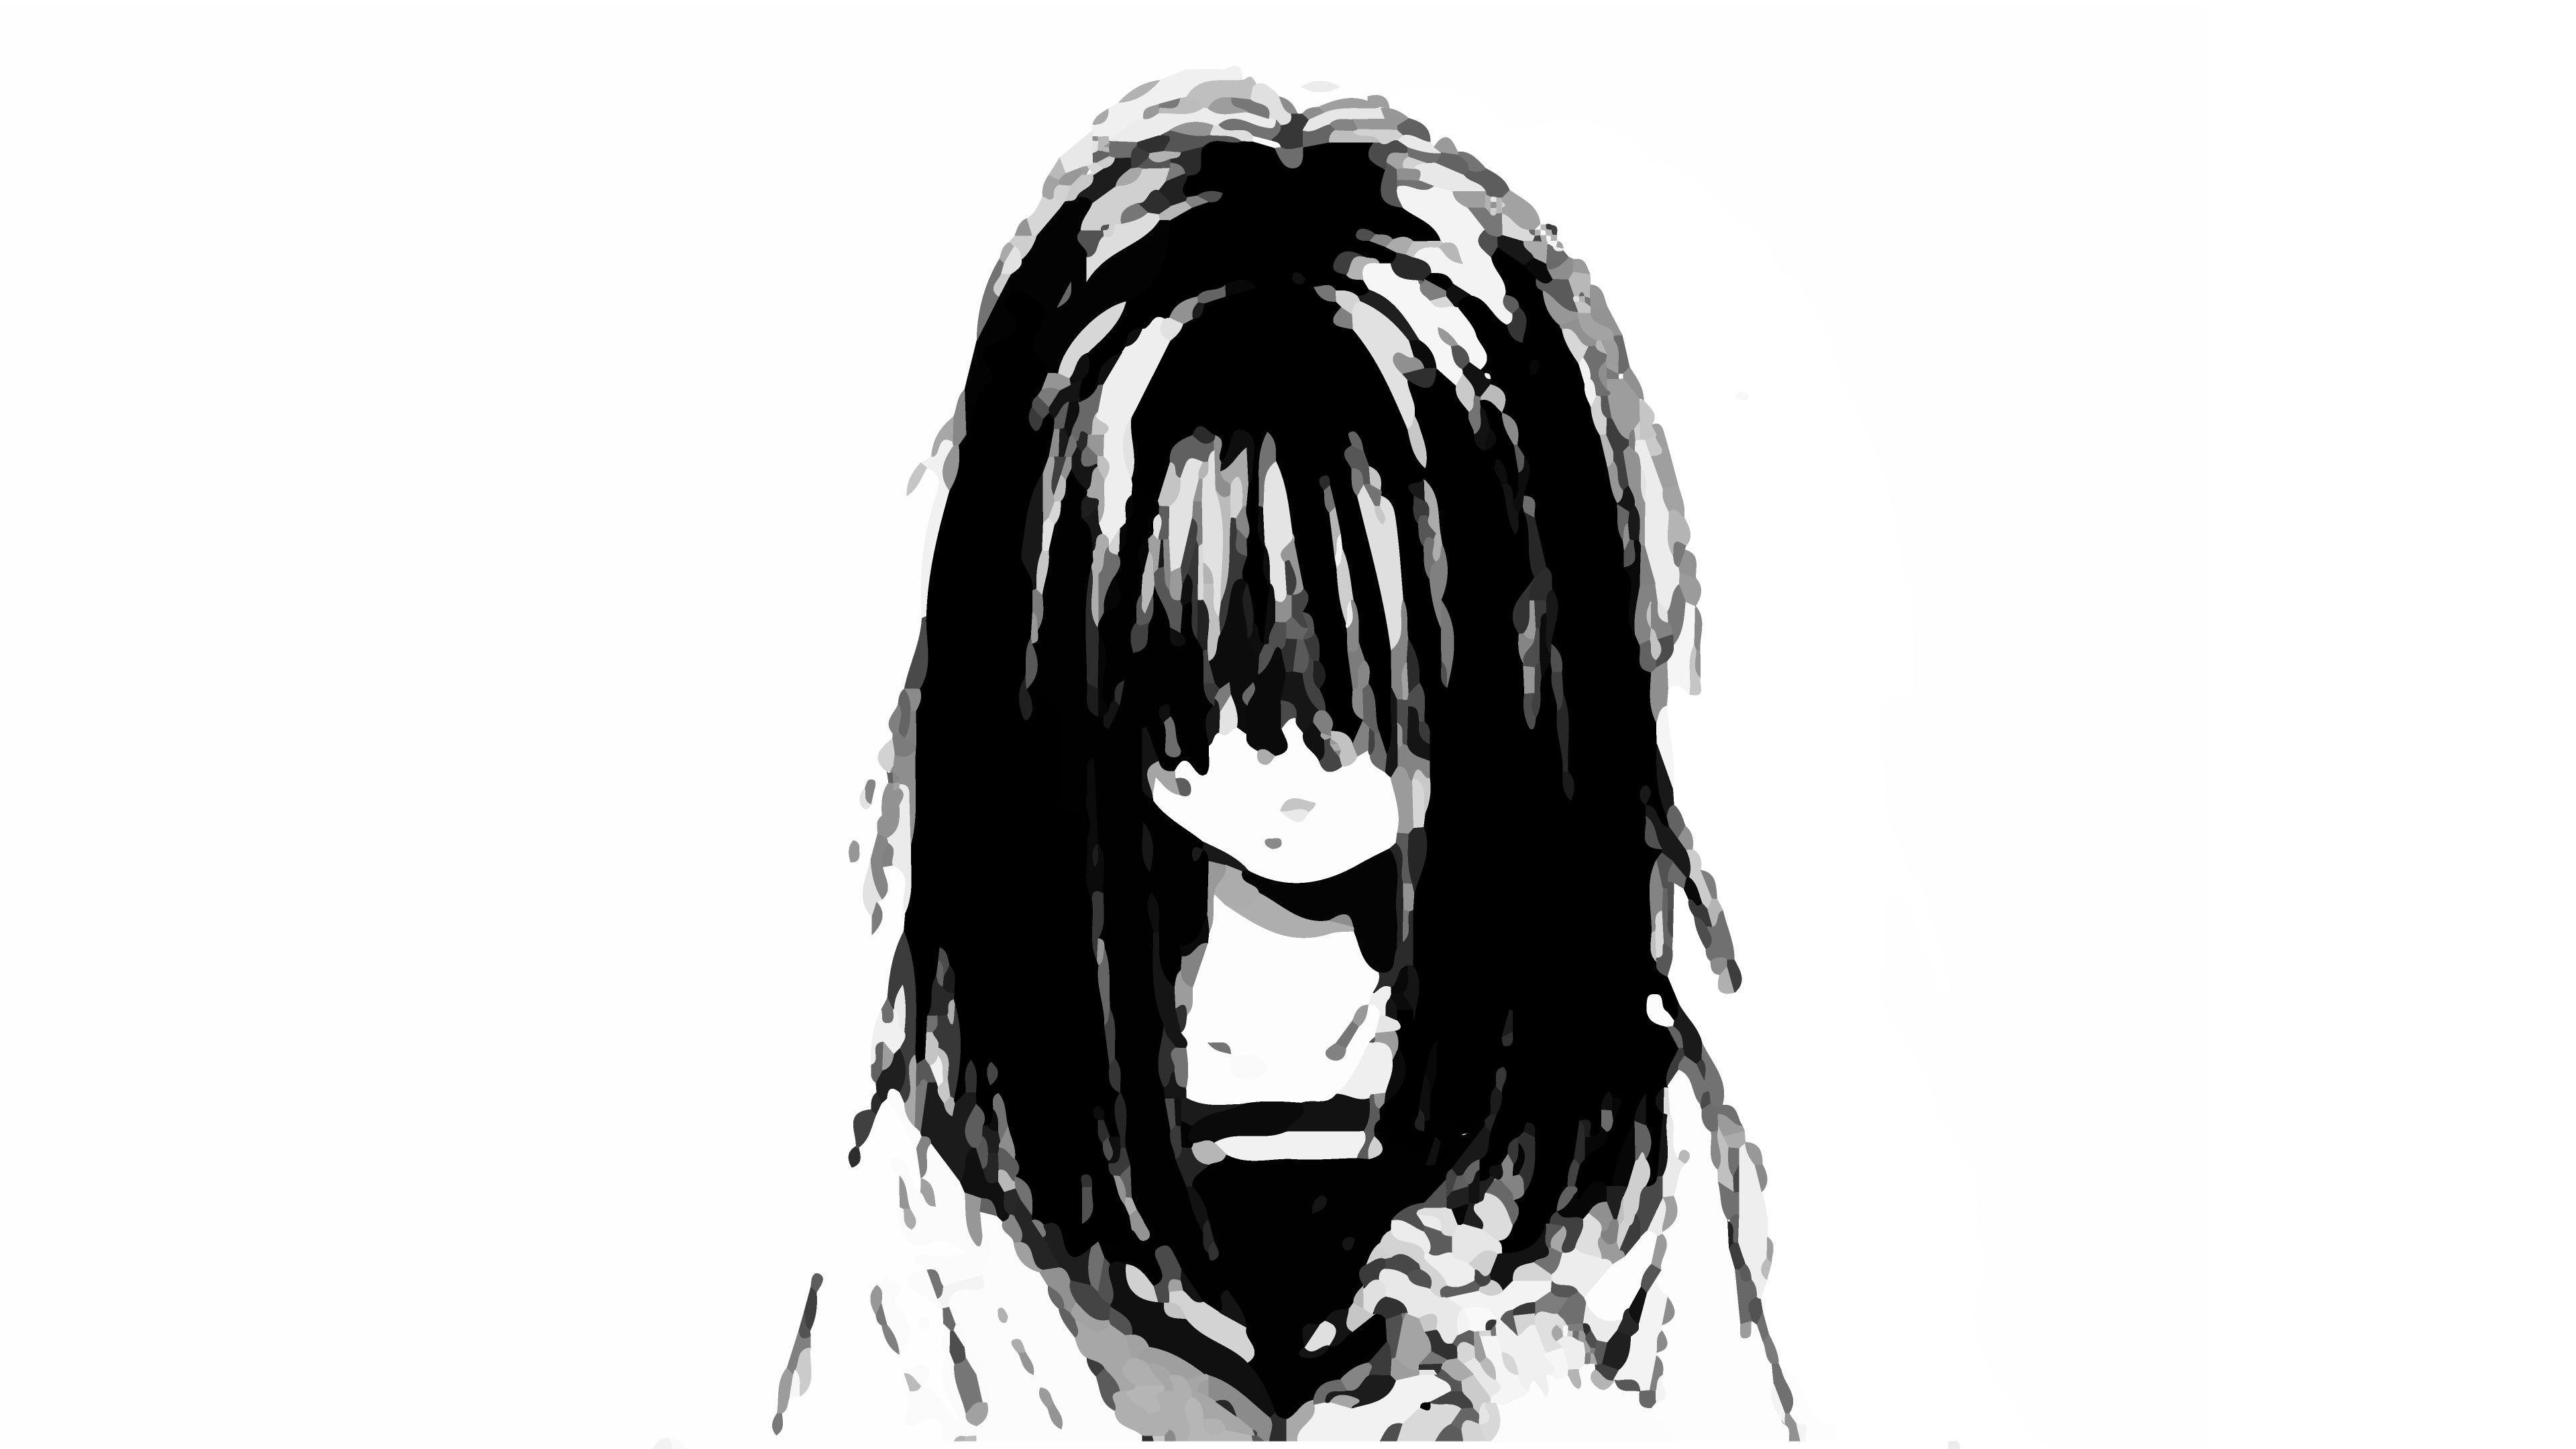 Black And White Anime Girl Sad Wallpapers Wallpaper Cave